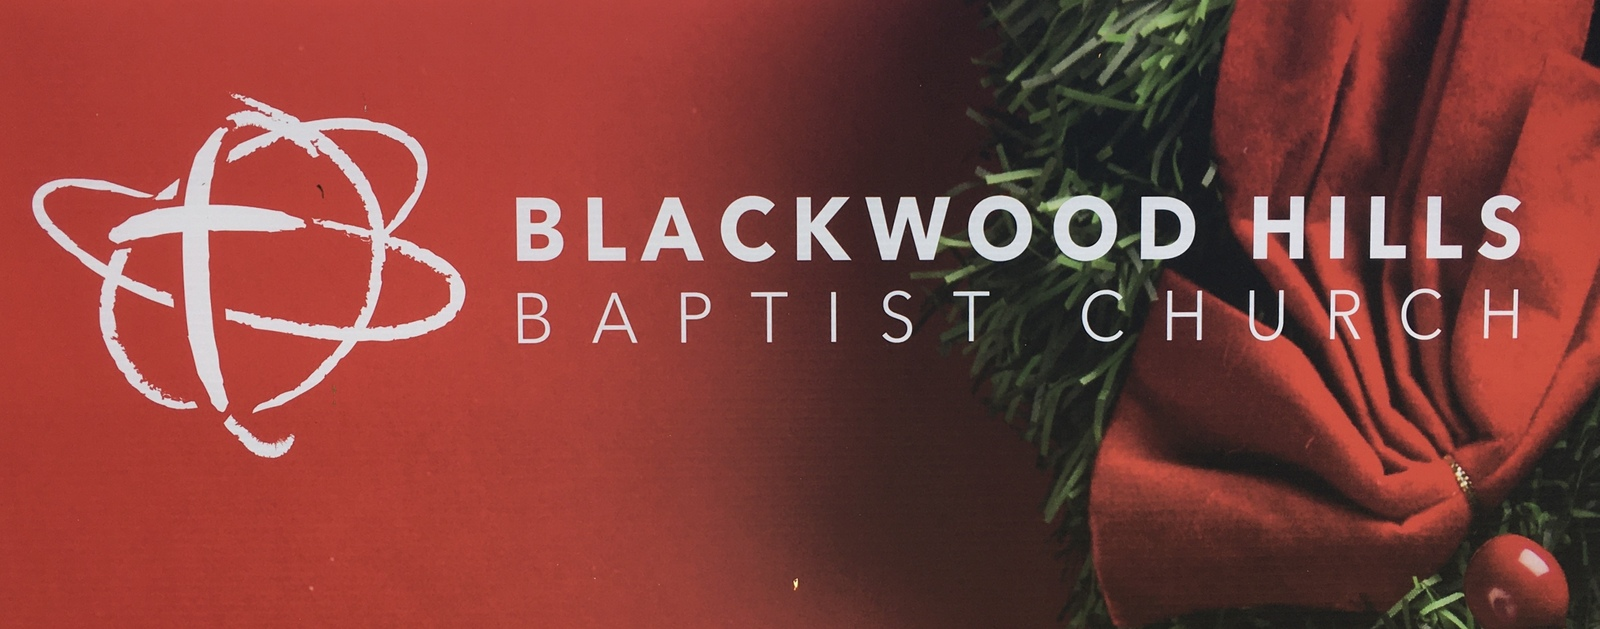 Blackwood Hills Baptist Useful Gift Shop